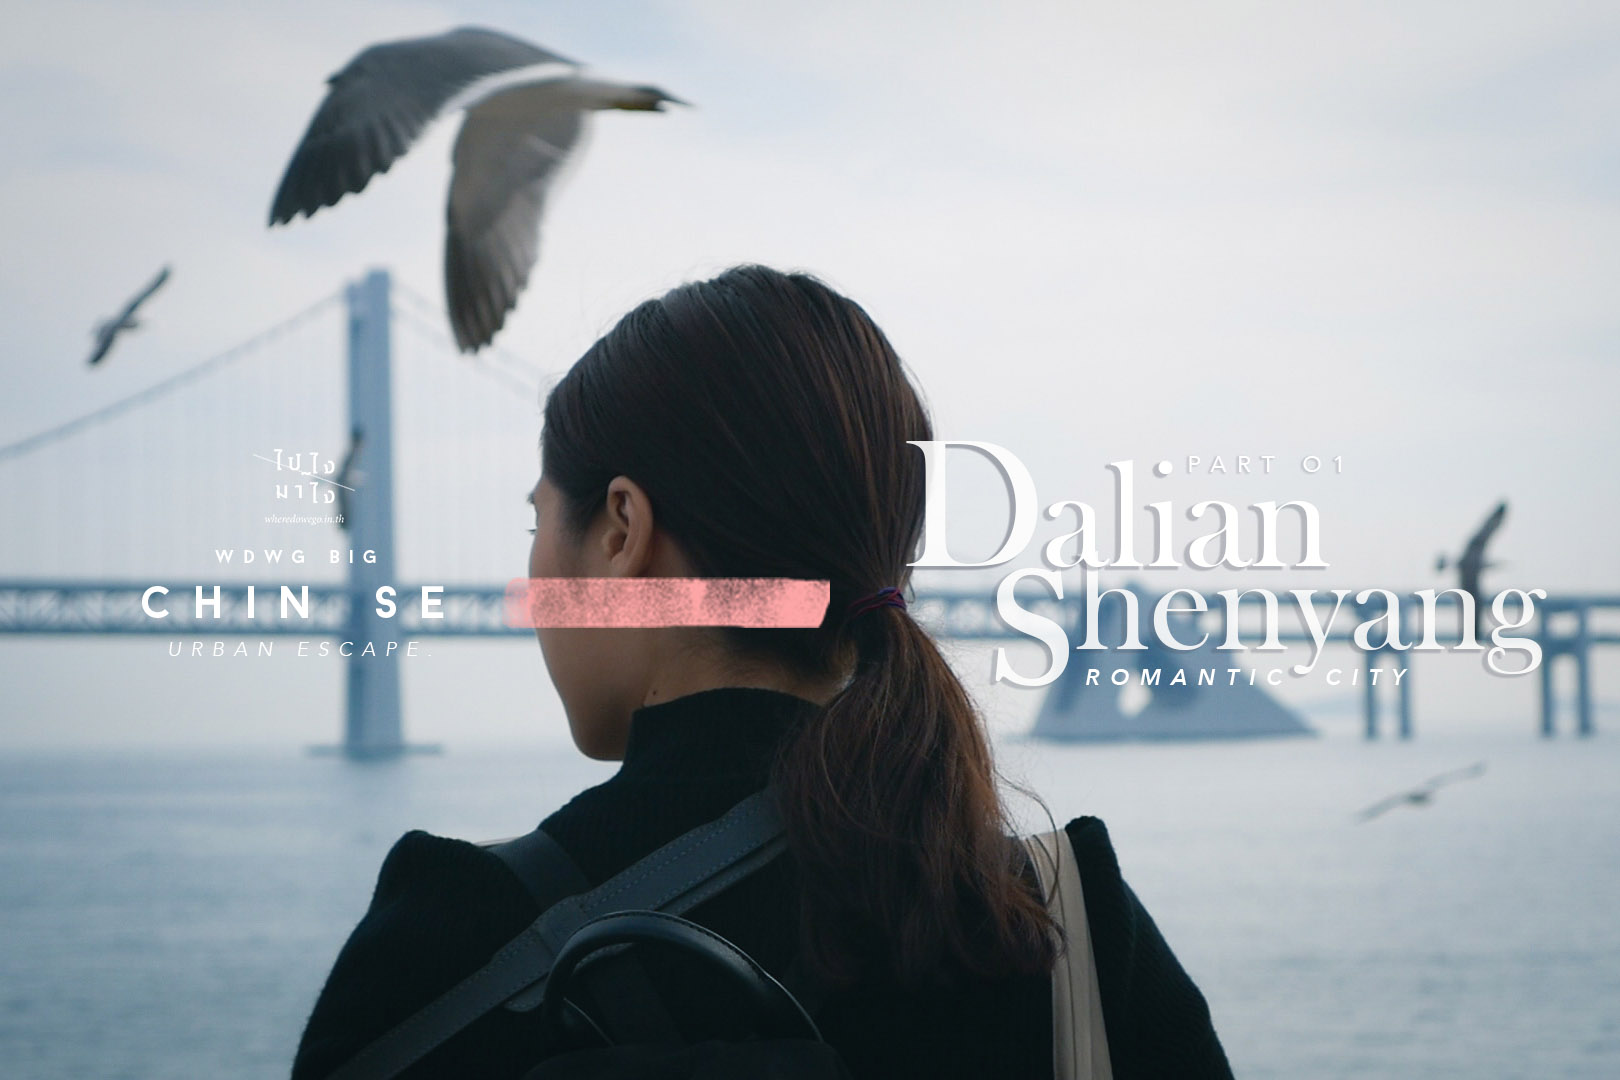 Chinese Urban Escape Part 1 – Dalian Baihe & Shenyang